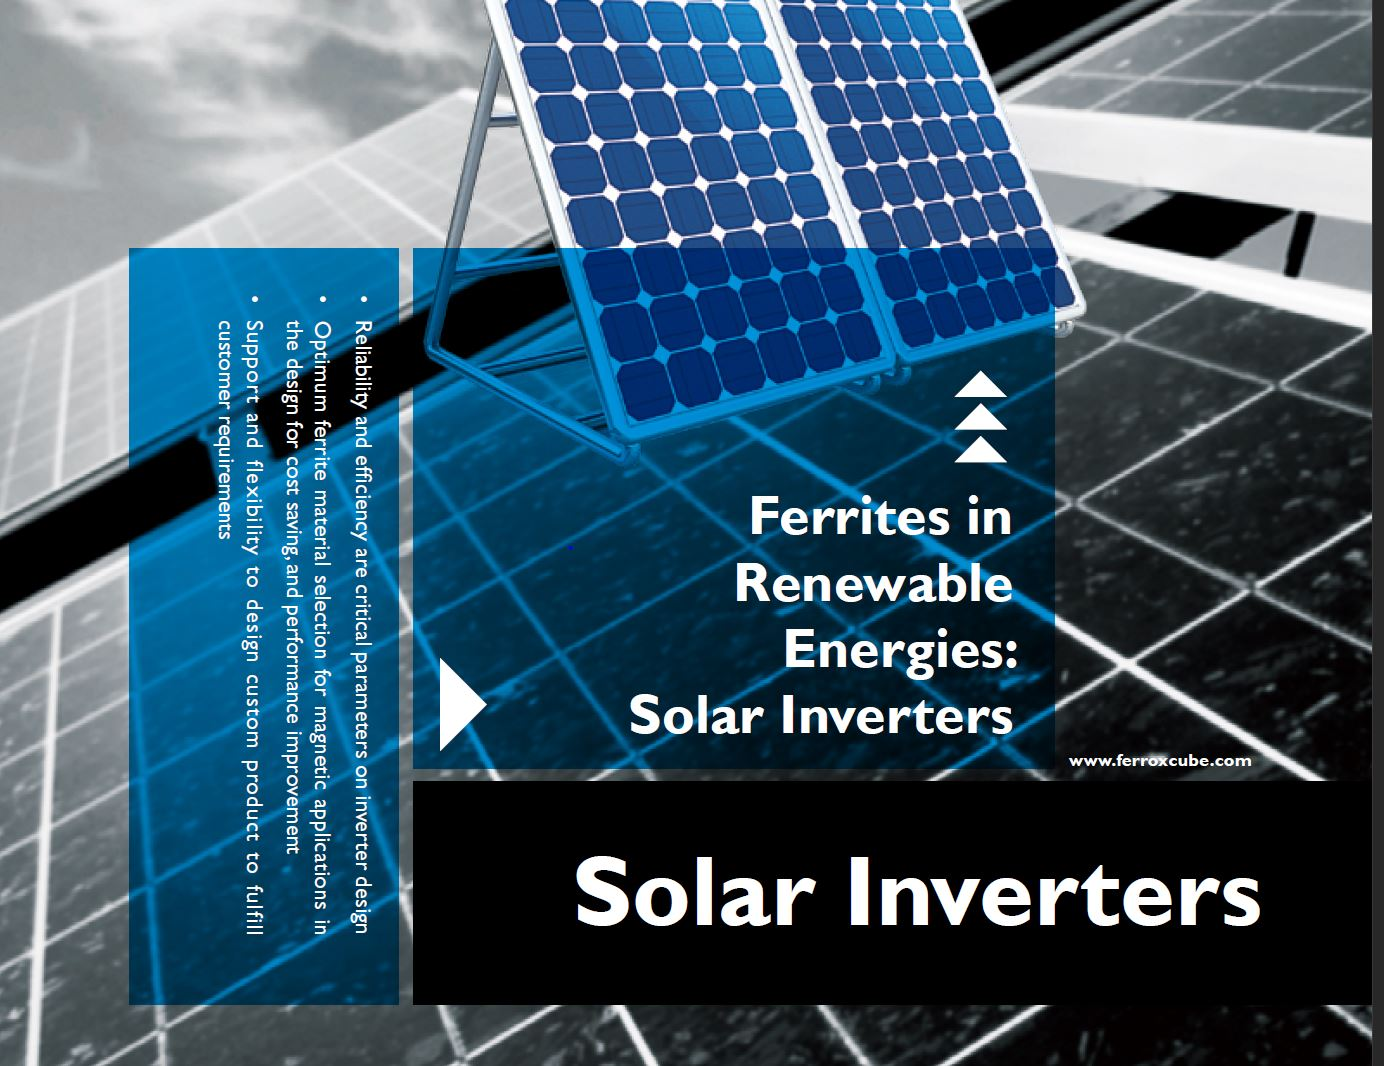 Solar Inverters Application Note